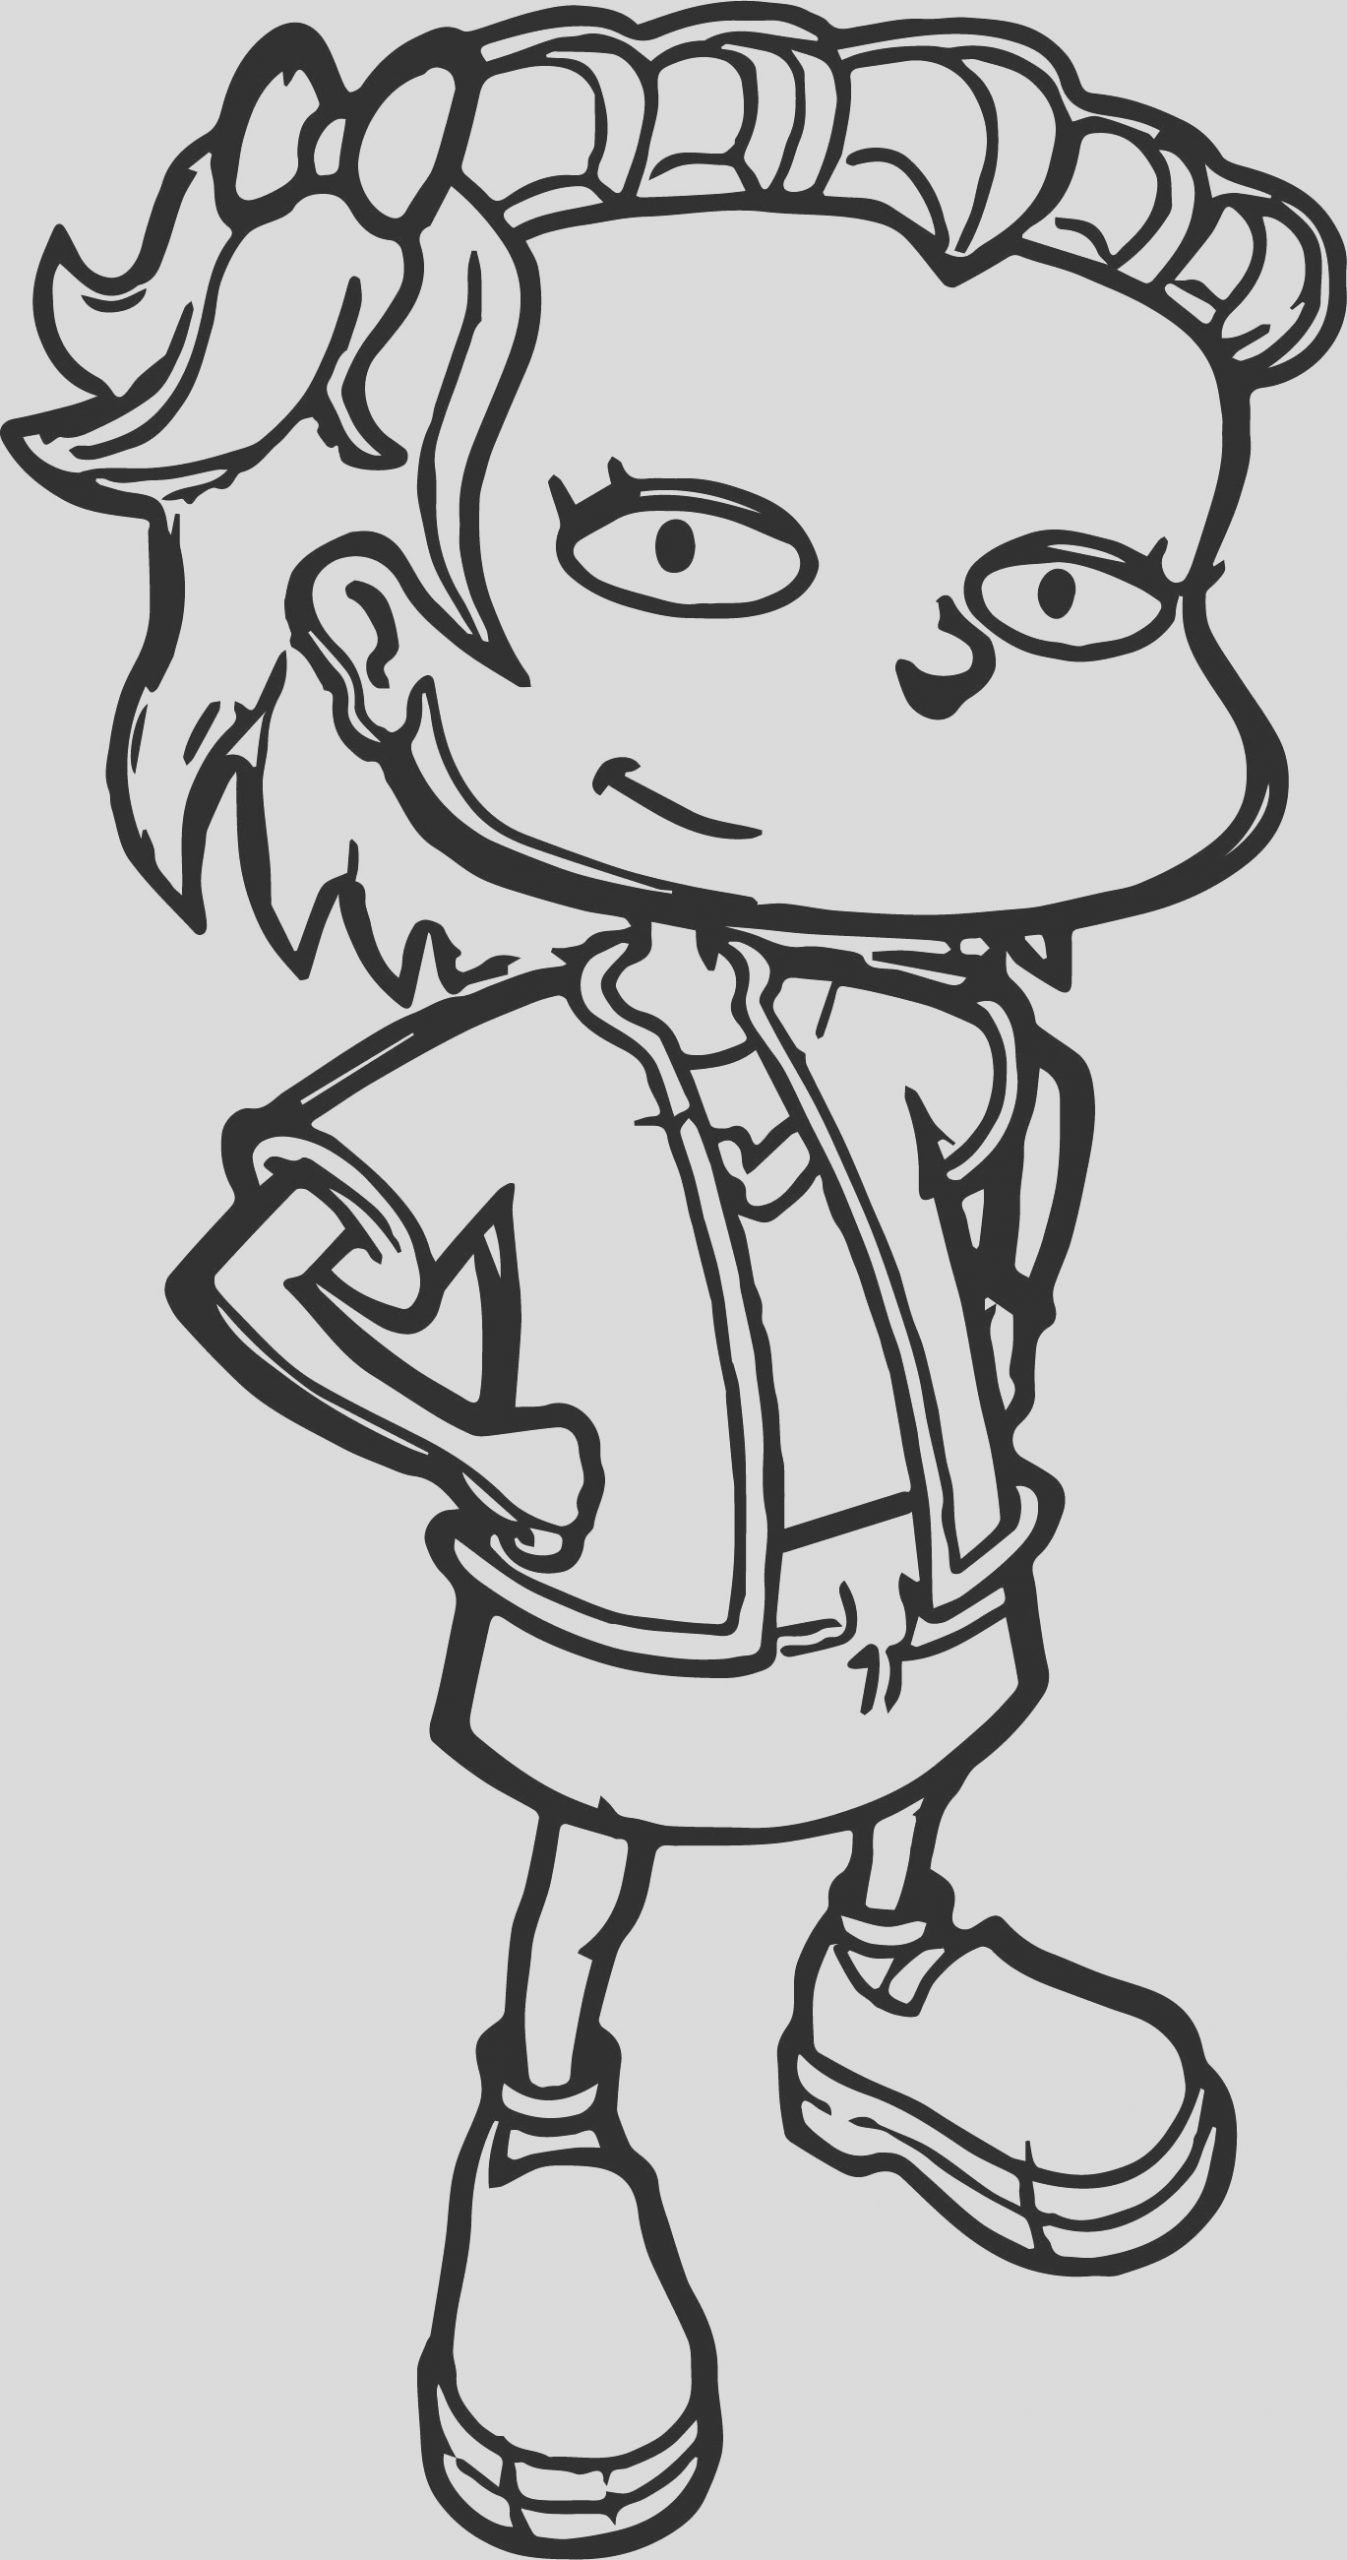 lil rugrats grown coloring page